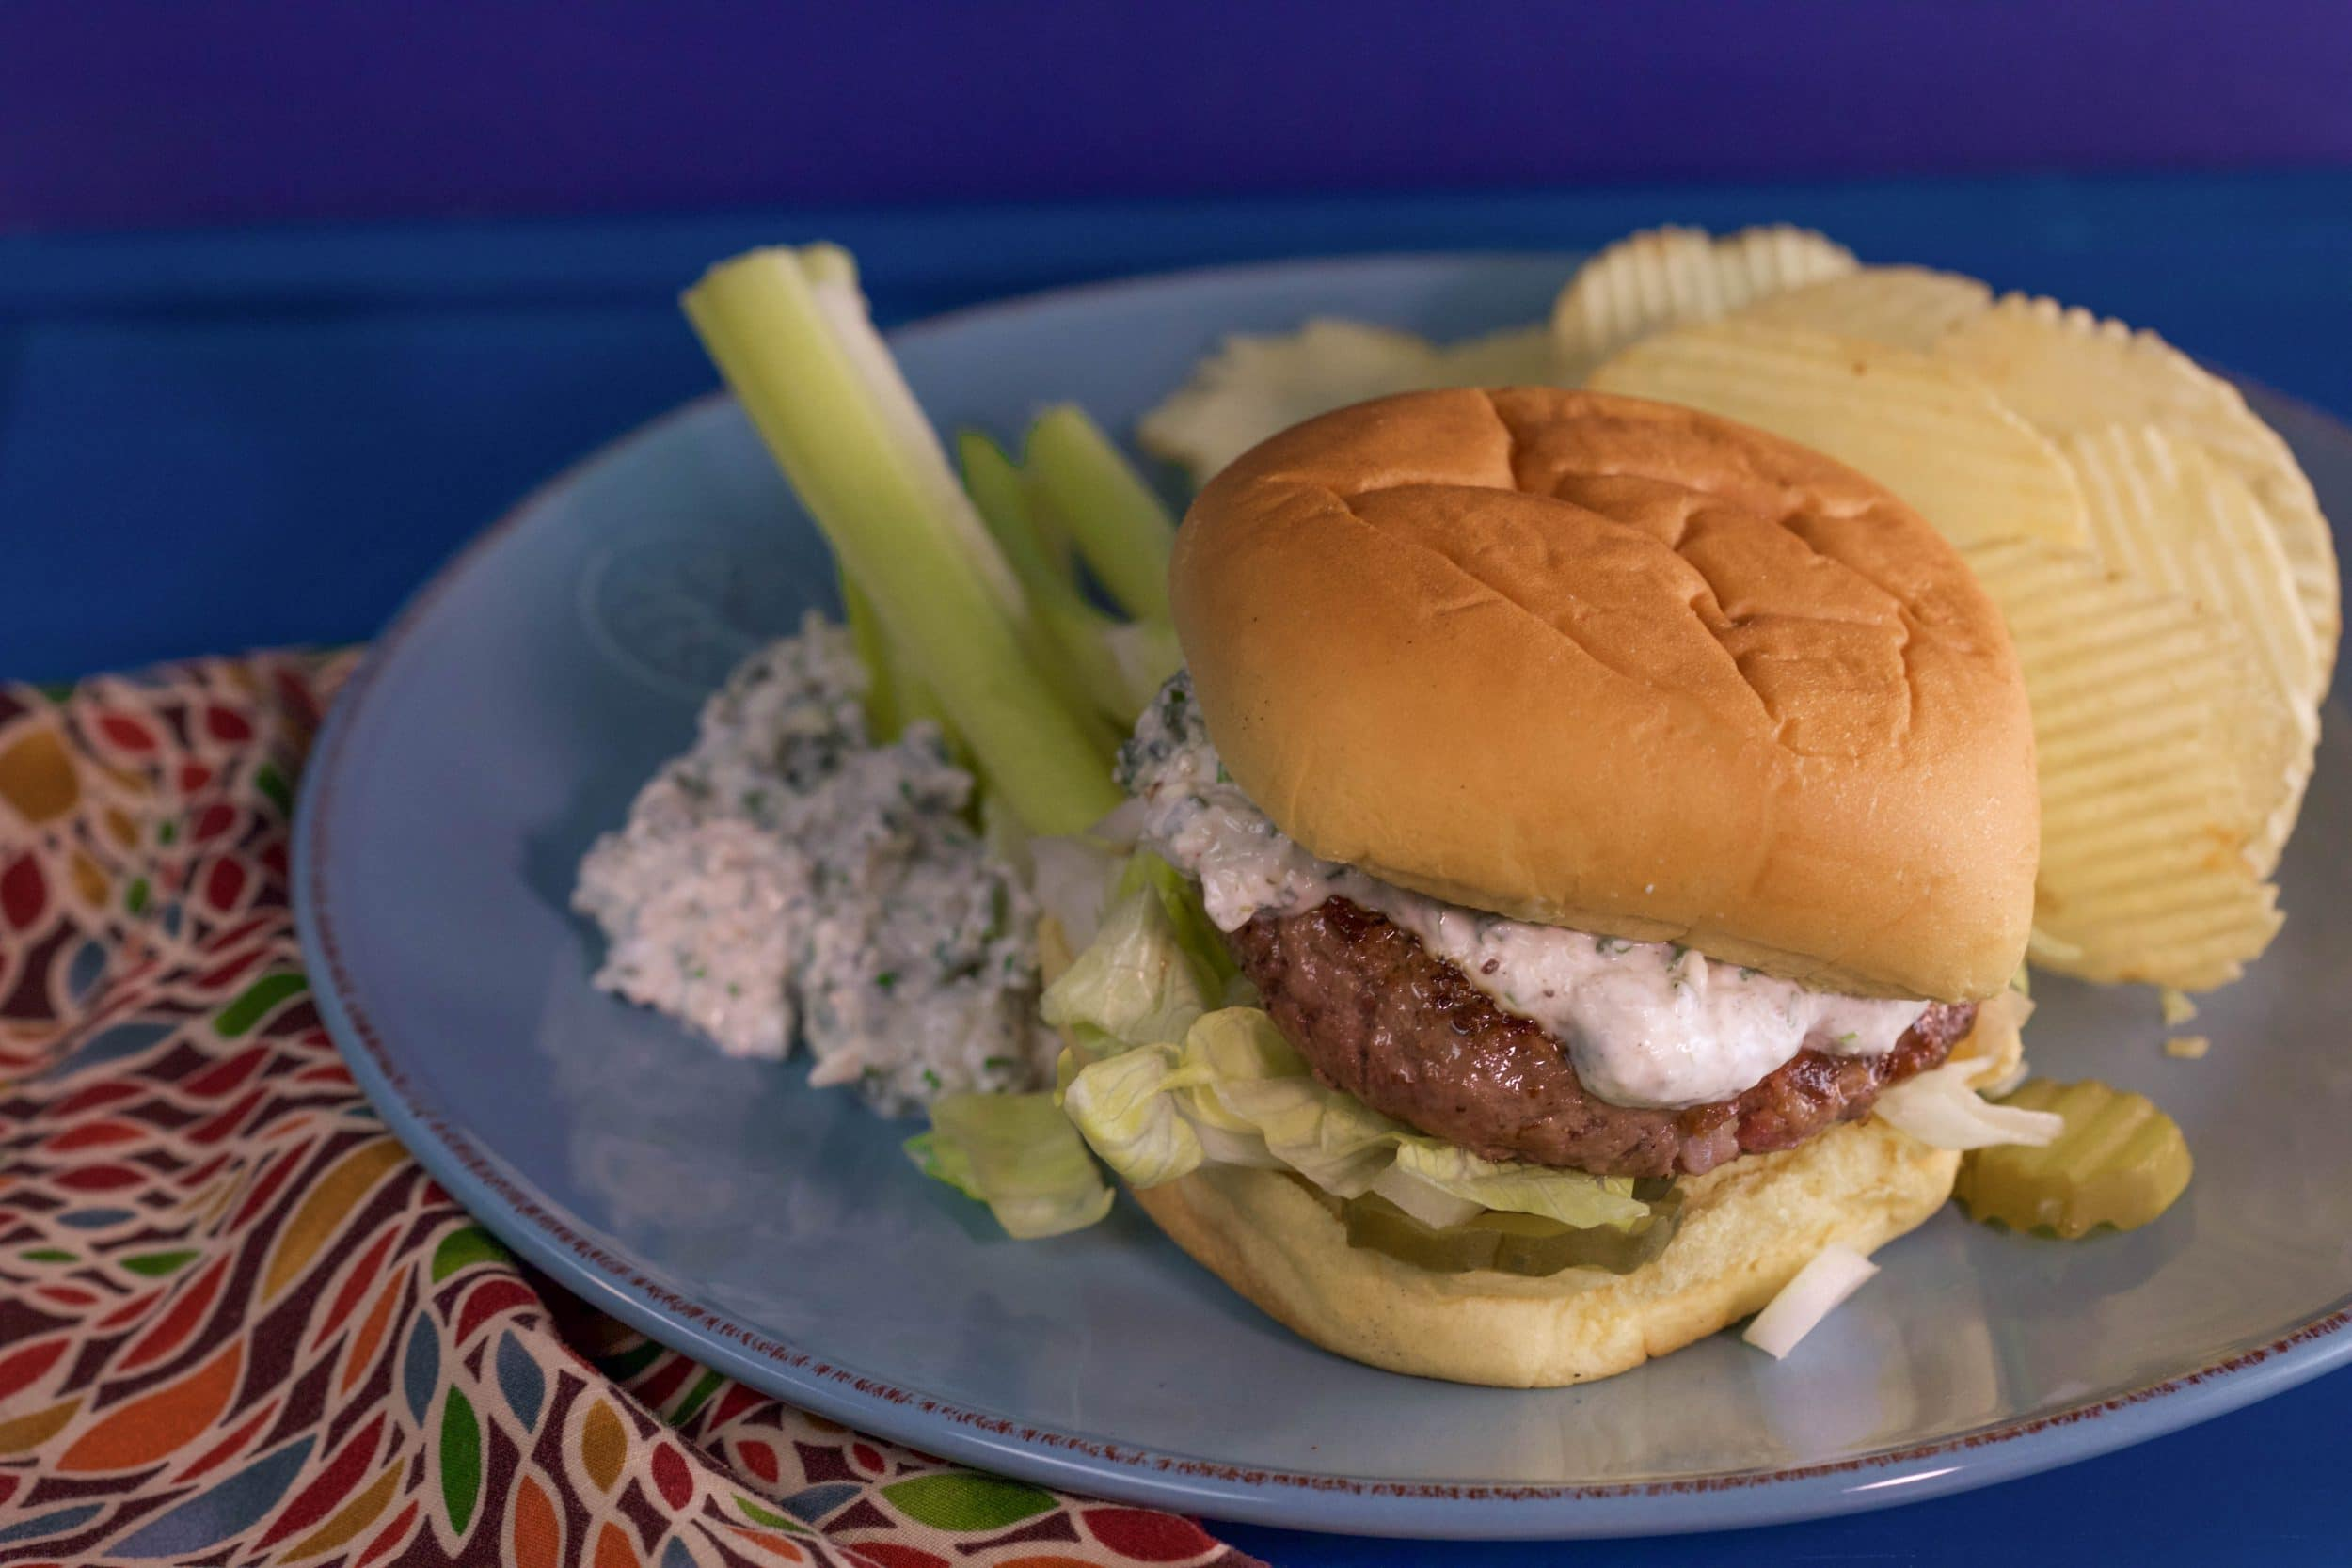 2-to-1 Beef-Bacon Burgers with Blue Cheese and Horseradish Sauce